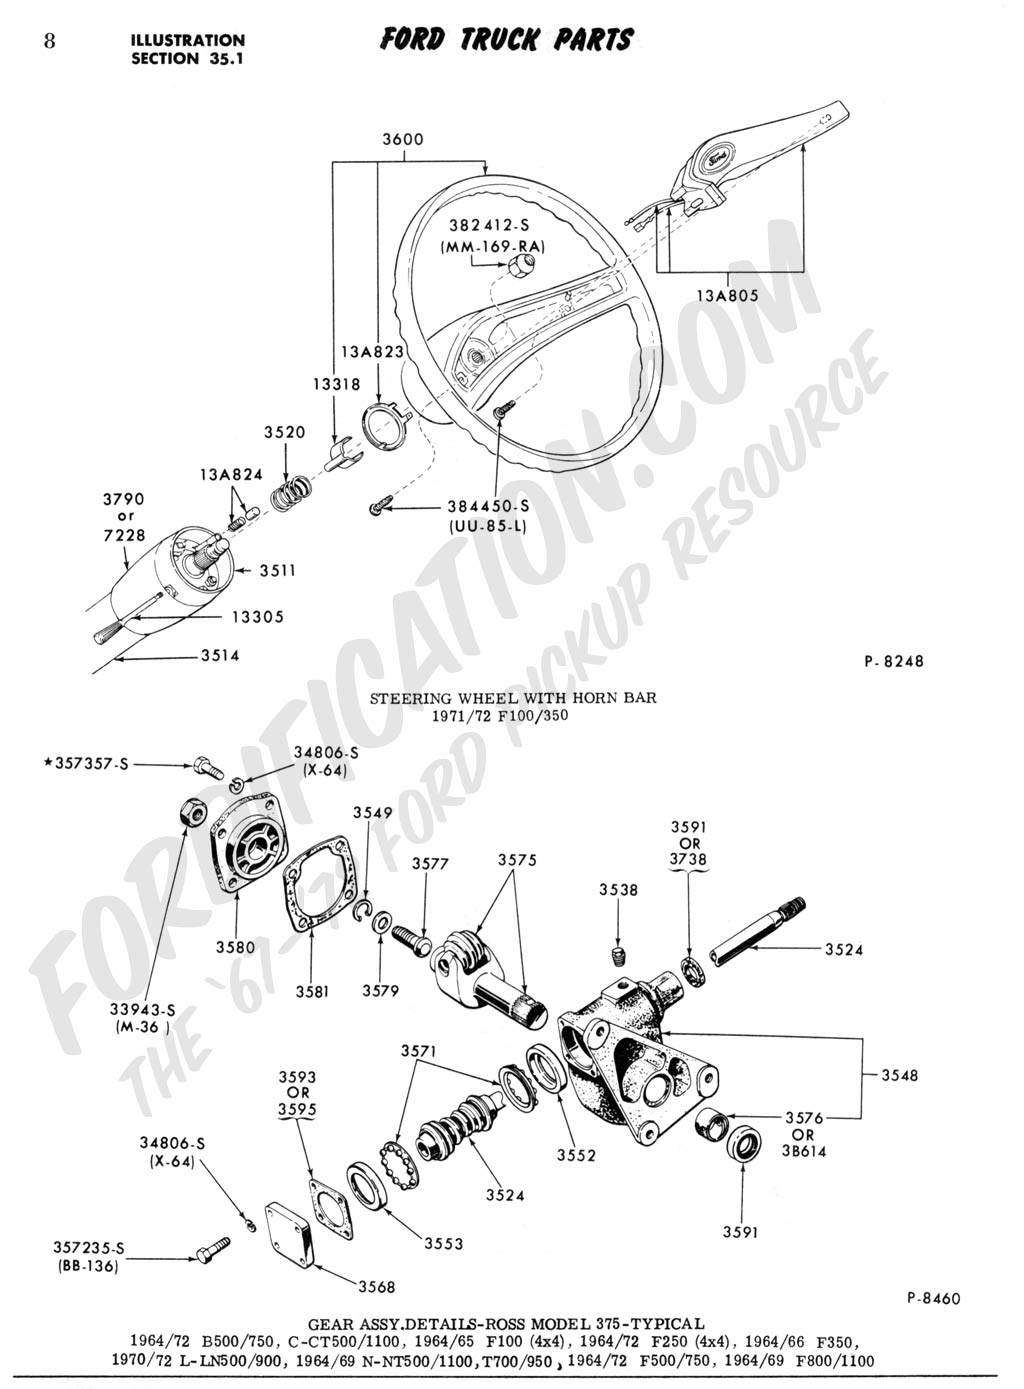 1995 ford f150 steering column diagram worn out steering rag joint Ford F-150 Wiring Diagram medium resolution of f250 steering diagram schematic wiring diagrams 77 f250 steering column diagram 2006 f250